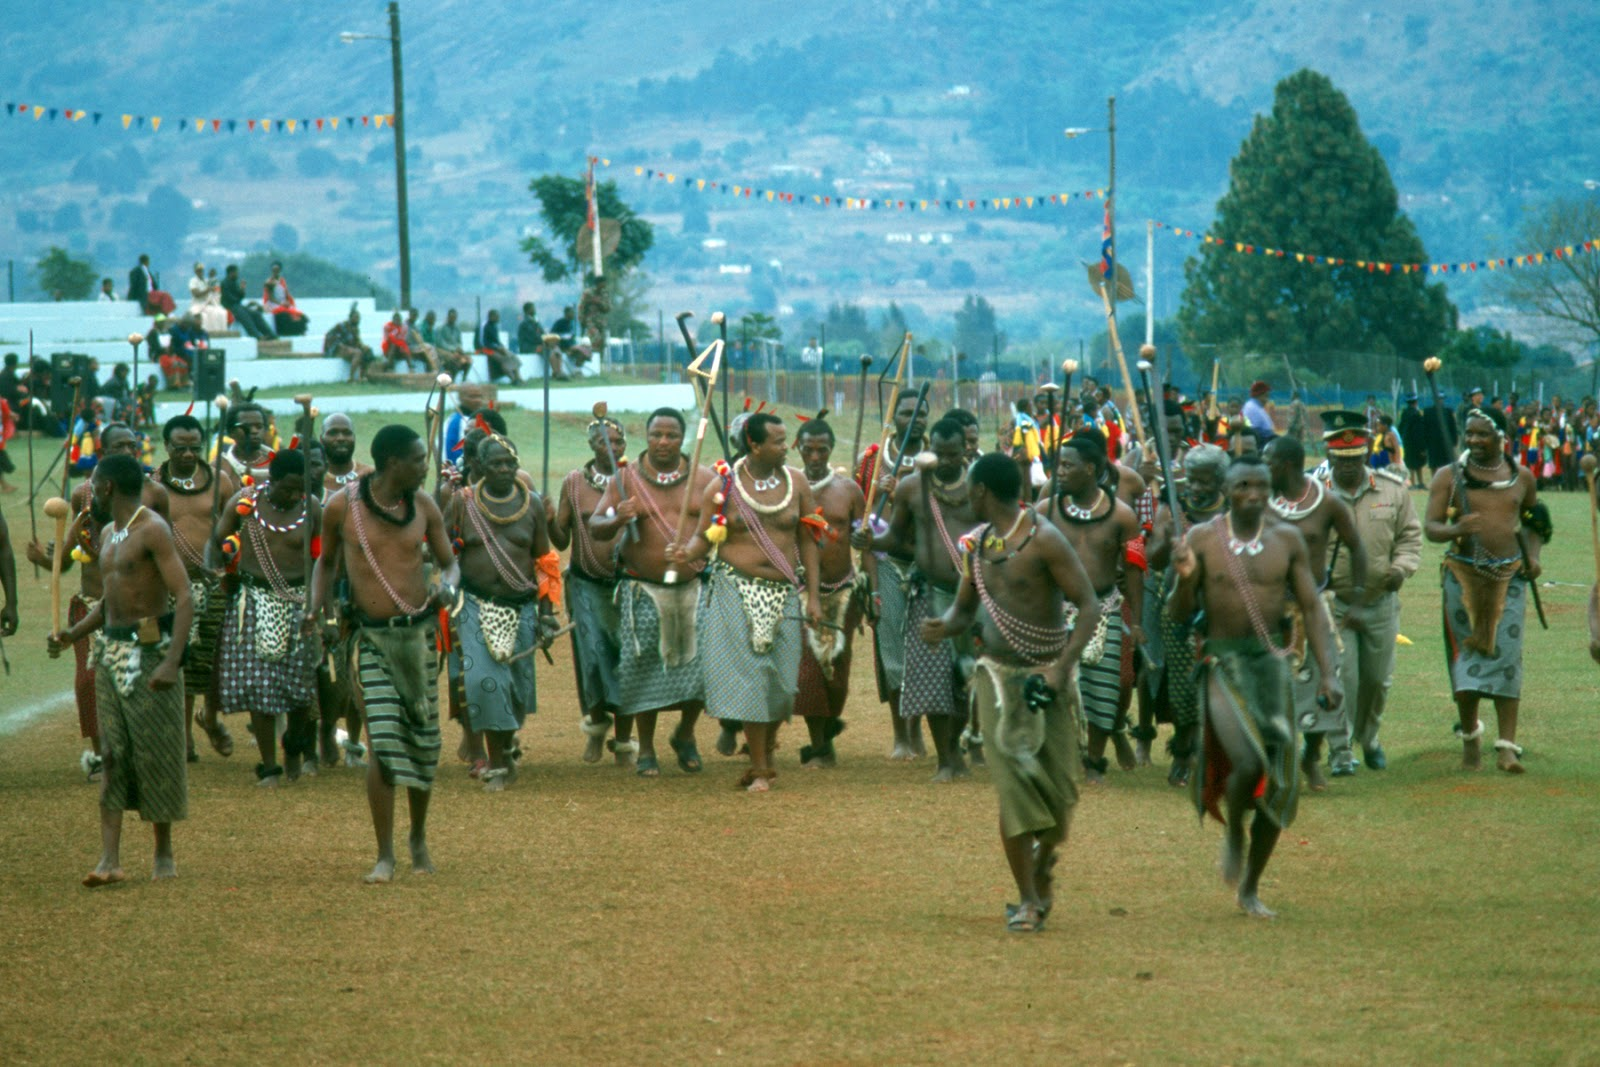 Blog: Swaziland: The dates of the Reed Dance 2013 have been announced